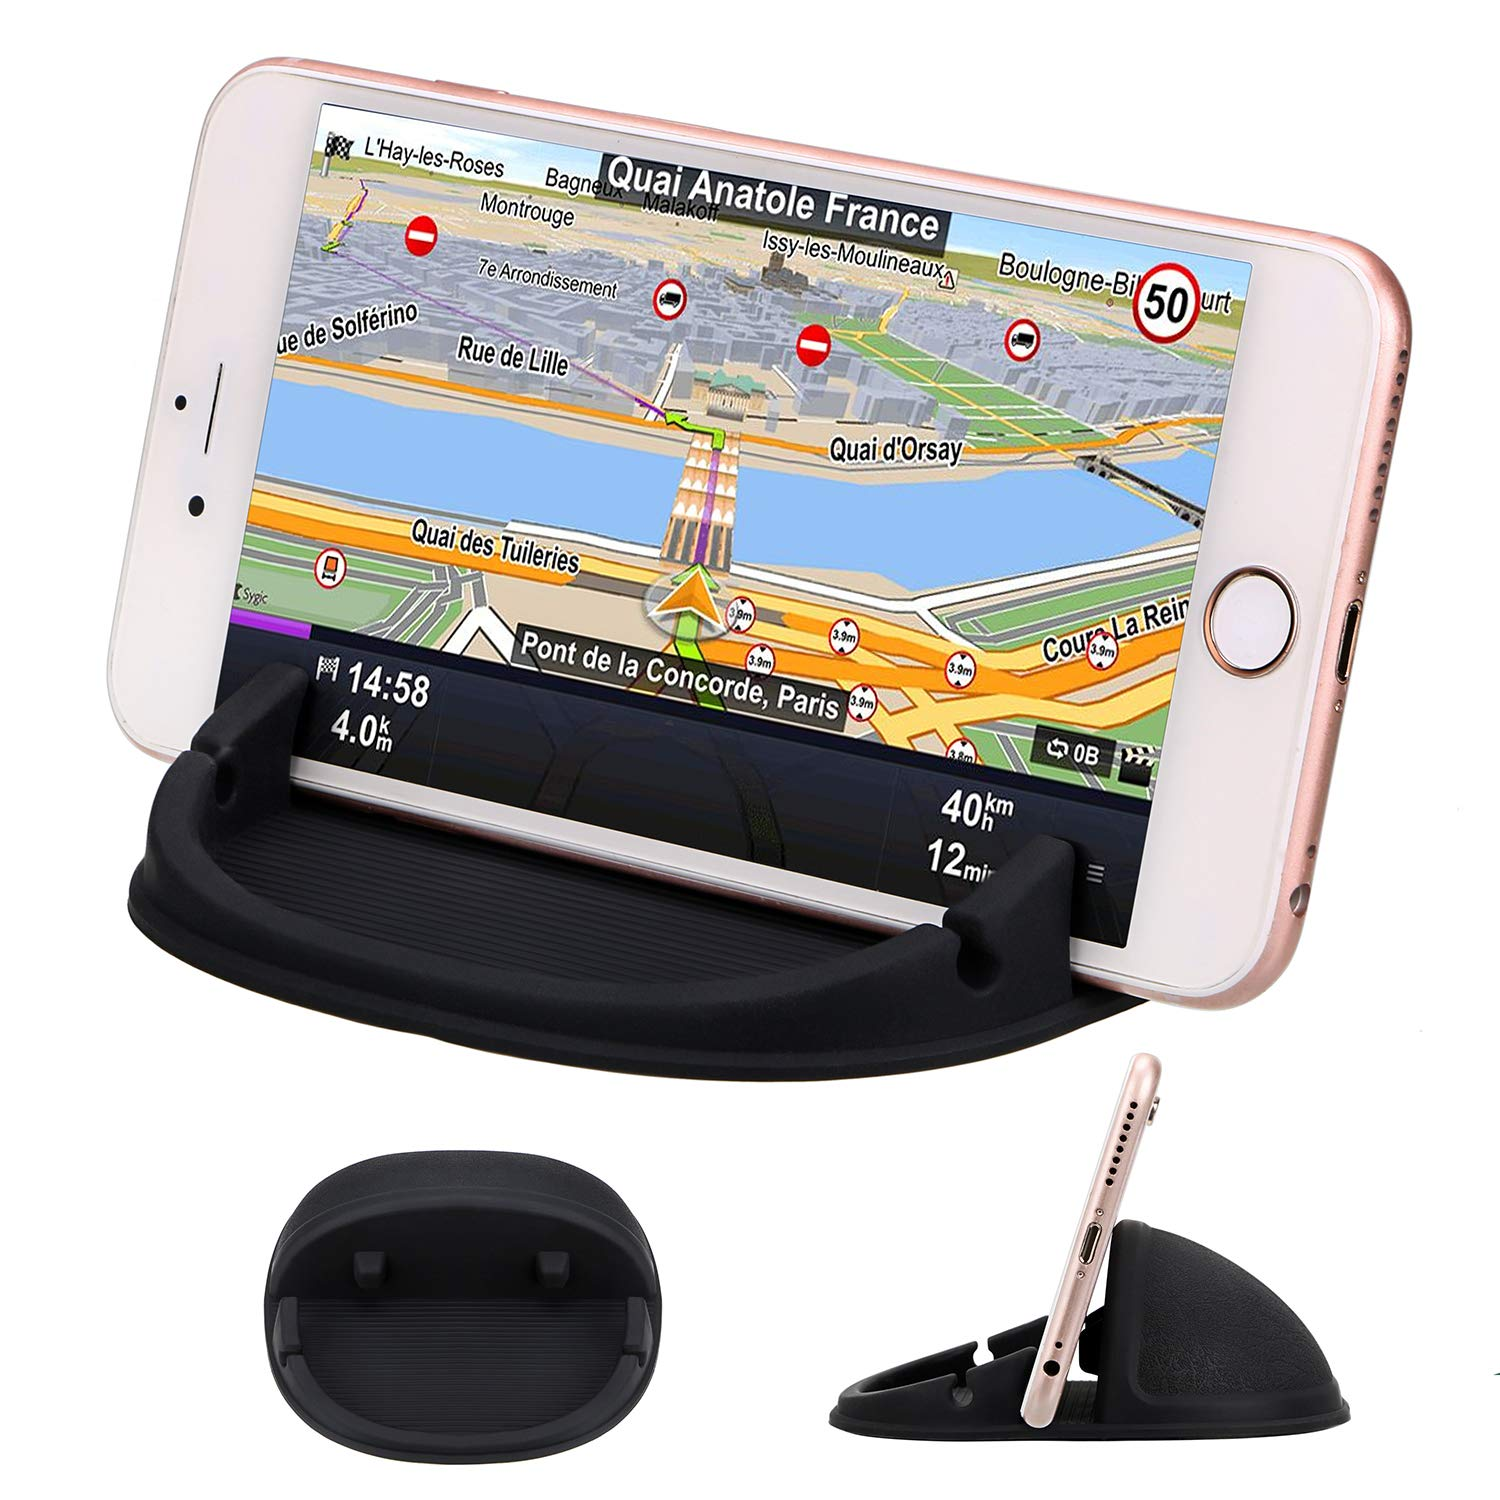 TOBOS Car Phone Mount Silicone Car Pad Mat for Various Dashboards, Anti-Slip Desk Phone Stand Compatible with iPhone, Samsung, Android Smartphones Car ,Phone Holder(Yellow)